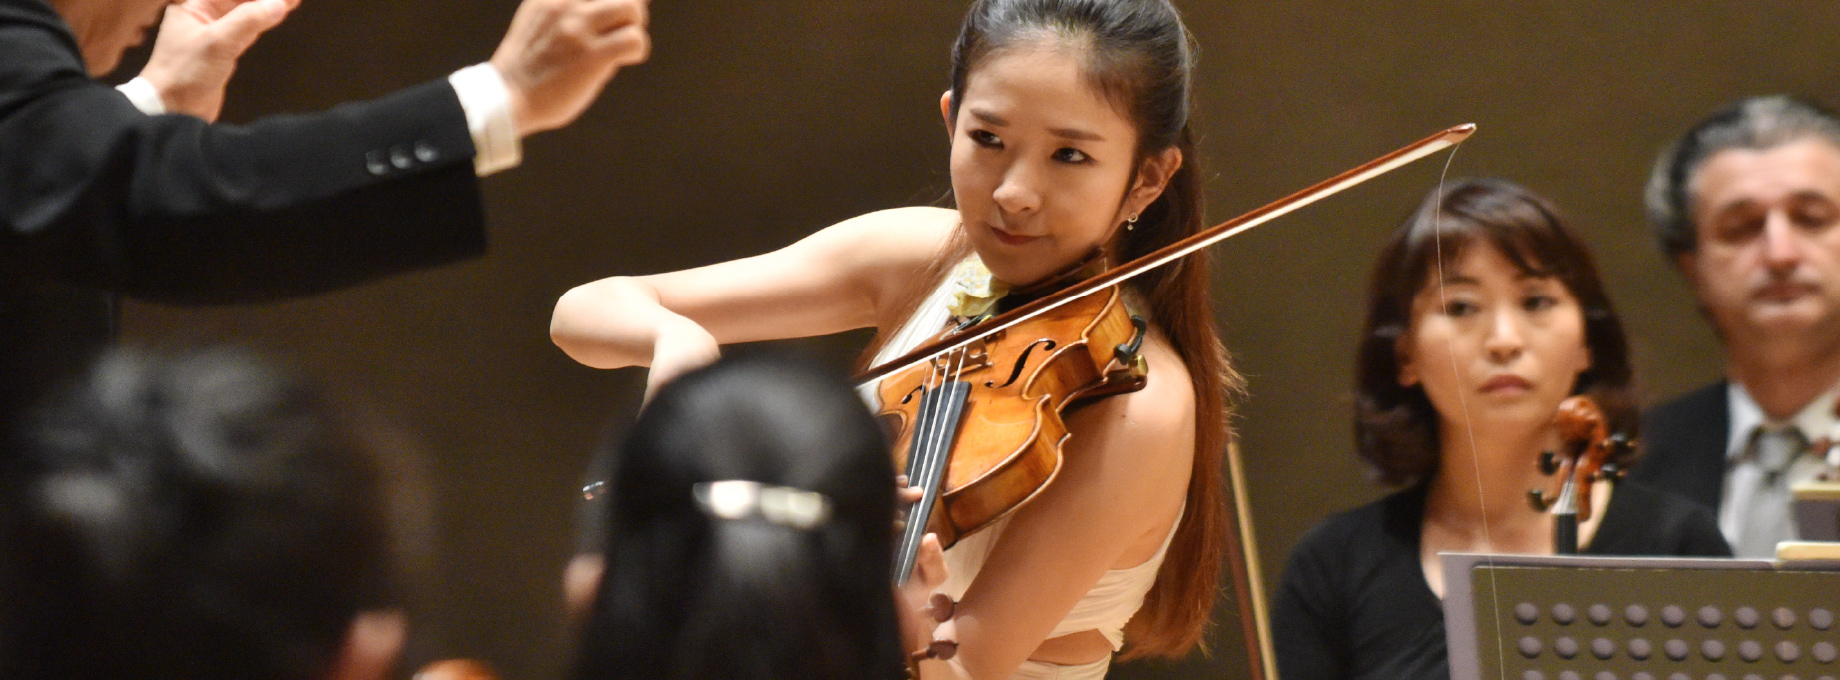 The 6th Competition Violin Section 1st Prize JANG Yoojin